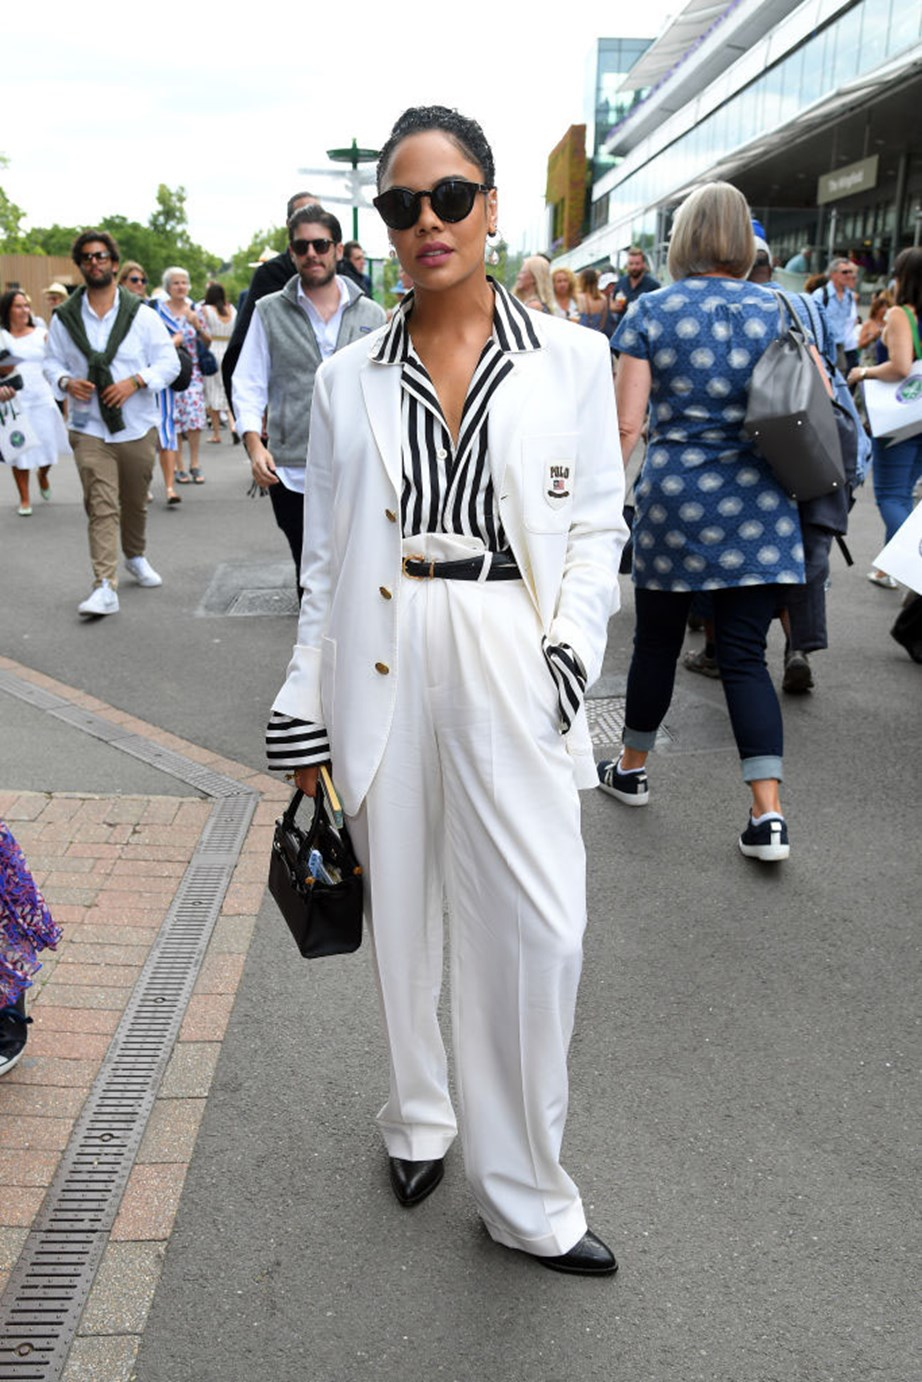 """***Tessa Thompson***<br><br> """"Love this. The pocket crest, the deckchair stripes, the puddle hems, the sheer audacity of those pants… it's Golden Age movie-studio honcho on a transatlantic ocean-liner champagne bender—in the best possible way."""" - Tom Lazarus, copy director.<br><br> """"Tessa is the epitome of cool in her oversized white suit and flats."""" - Grace O'Neill, fashion features director."""